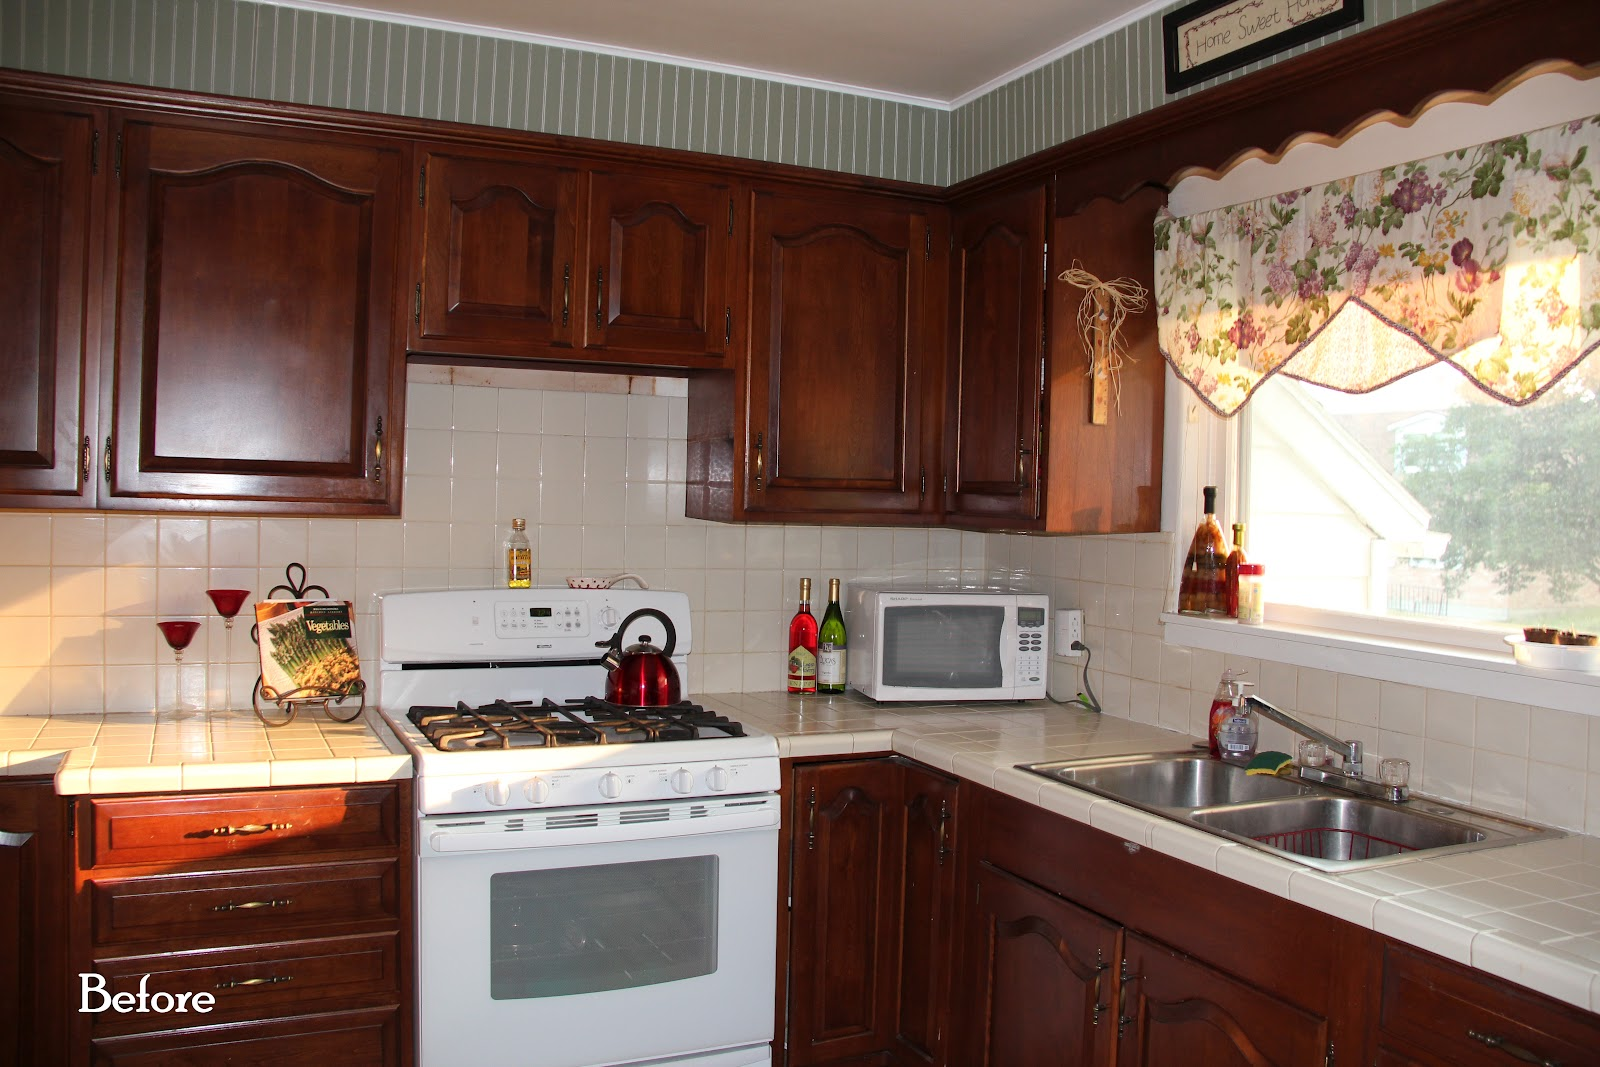 White Kitchen Appliances With Dark Cabinets To paint the kitchen